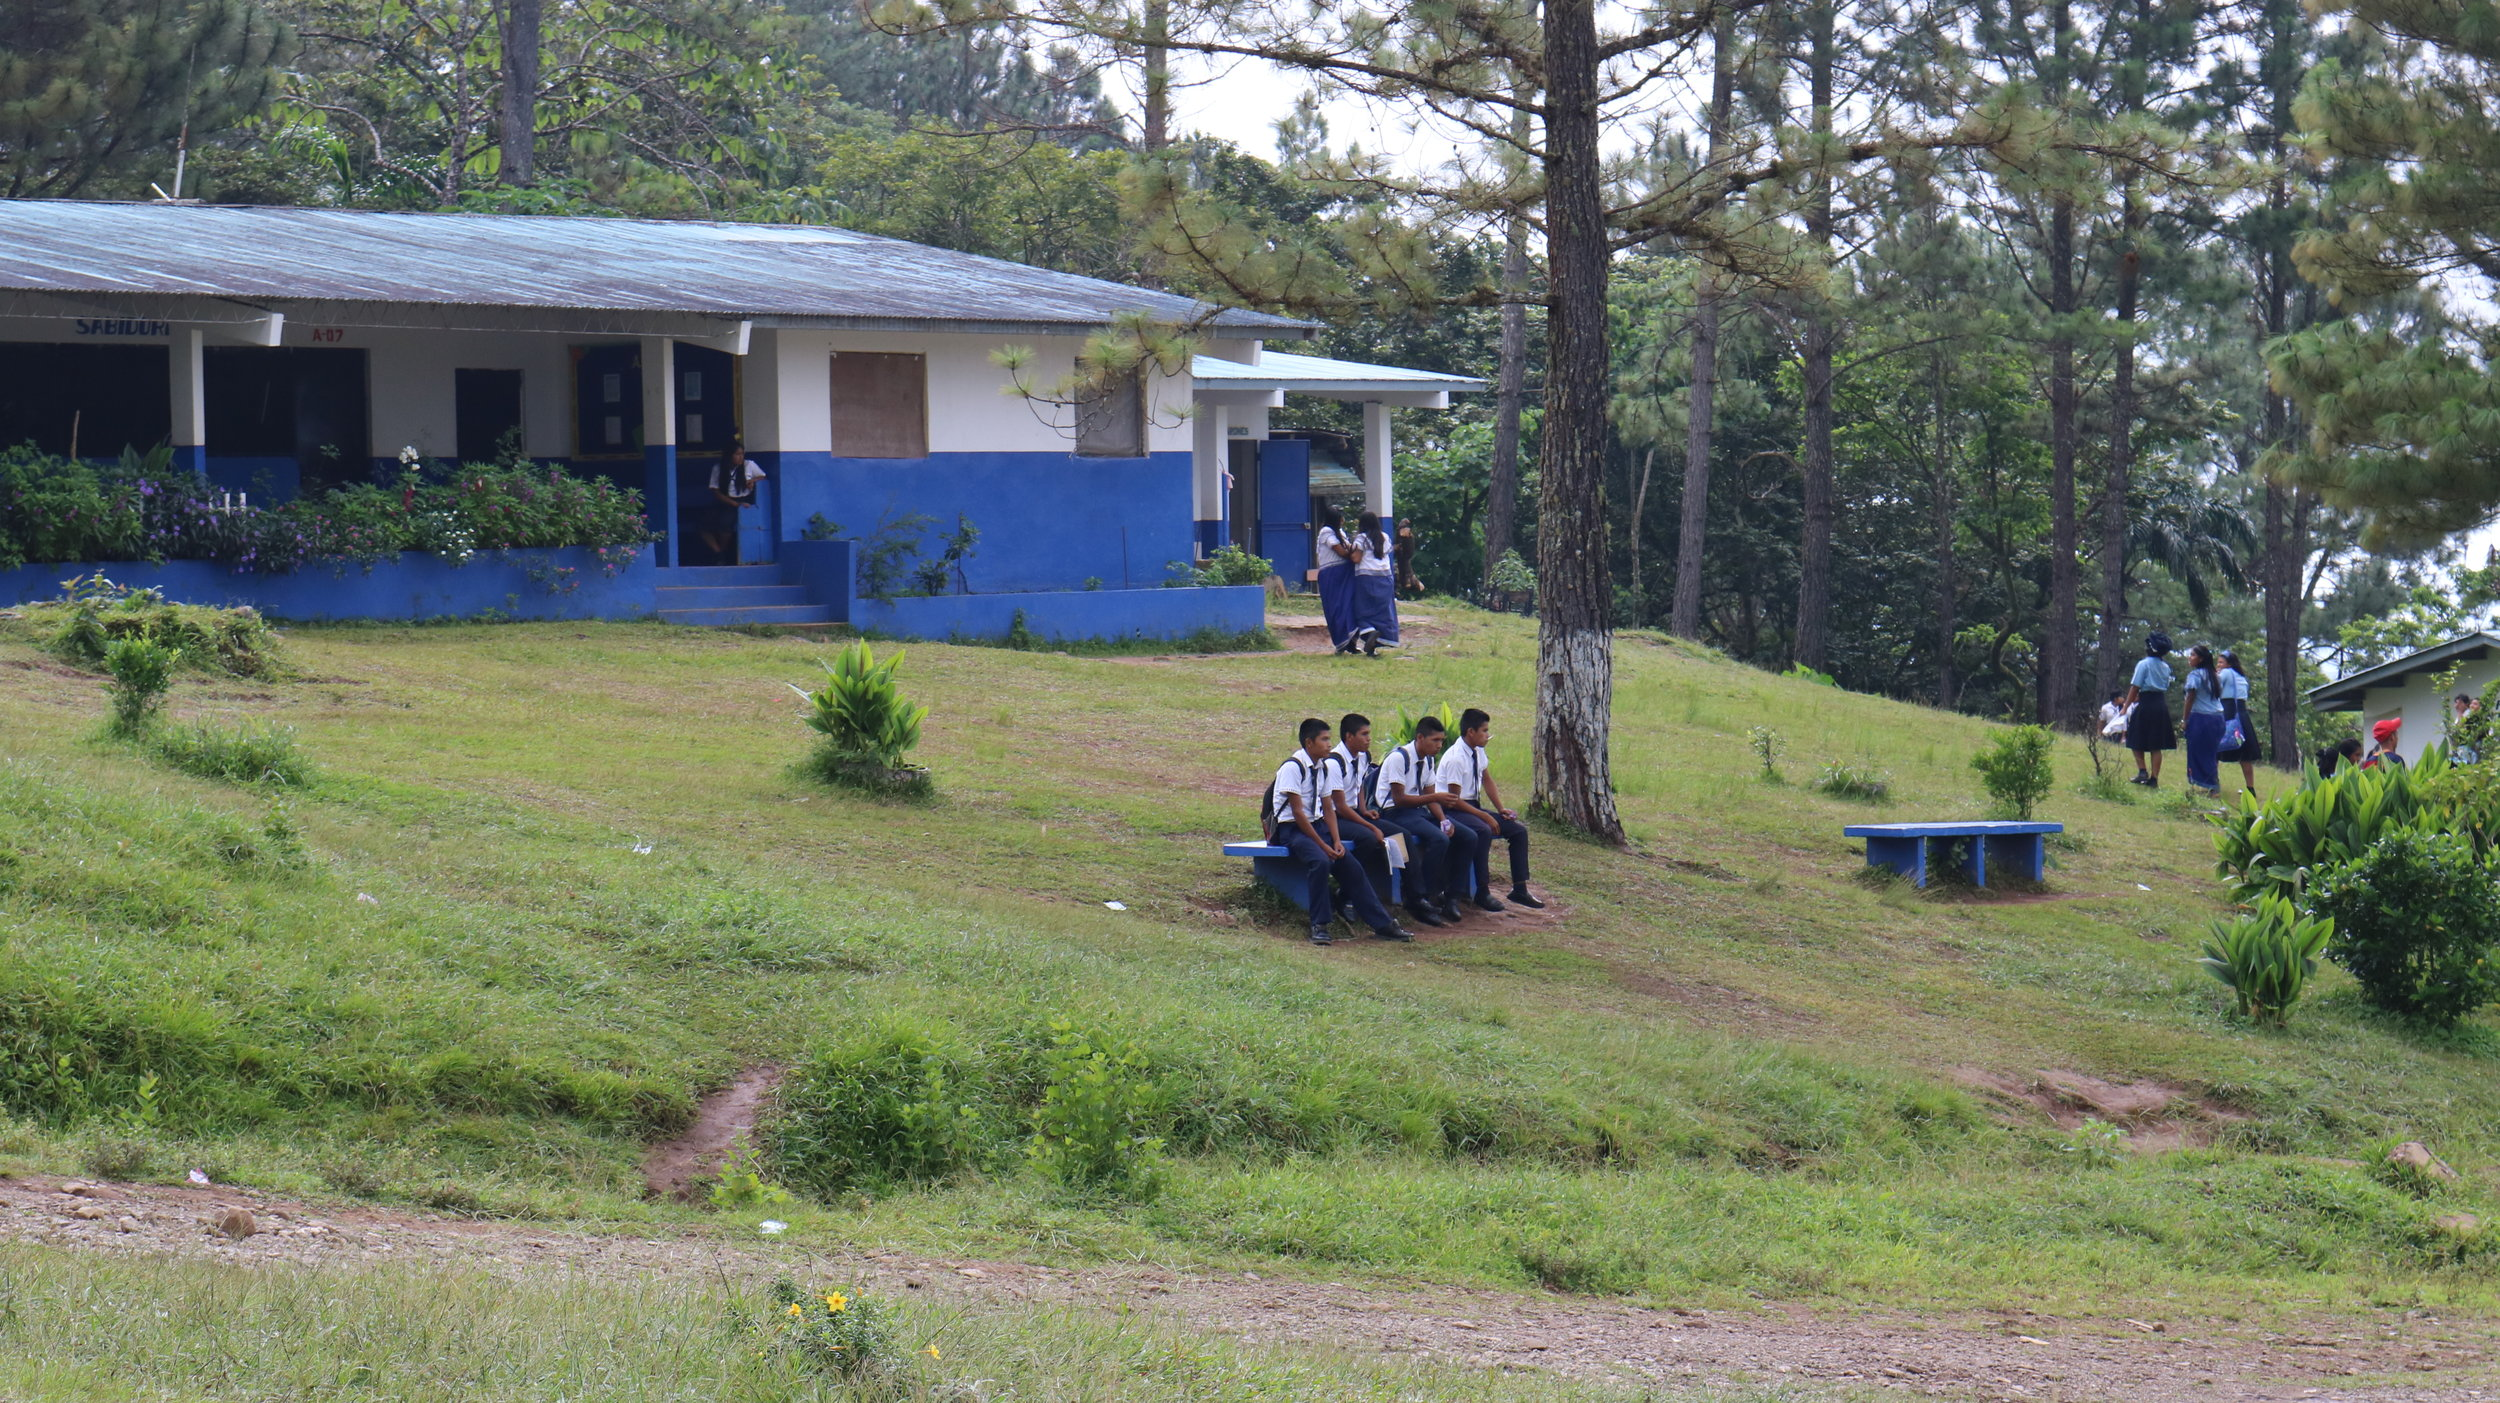 Students wait for school to start in Chami.